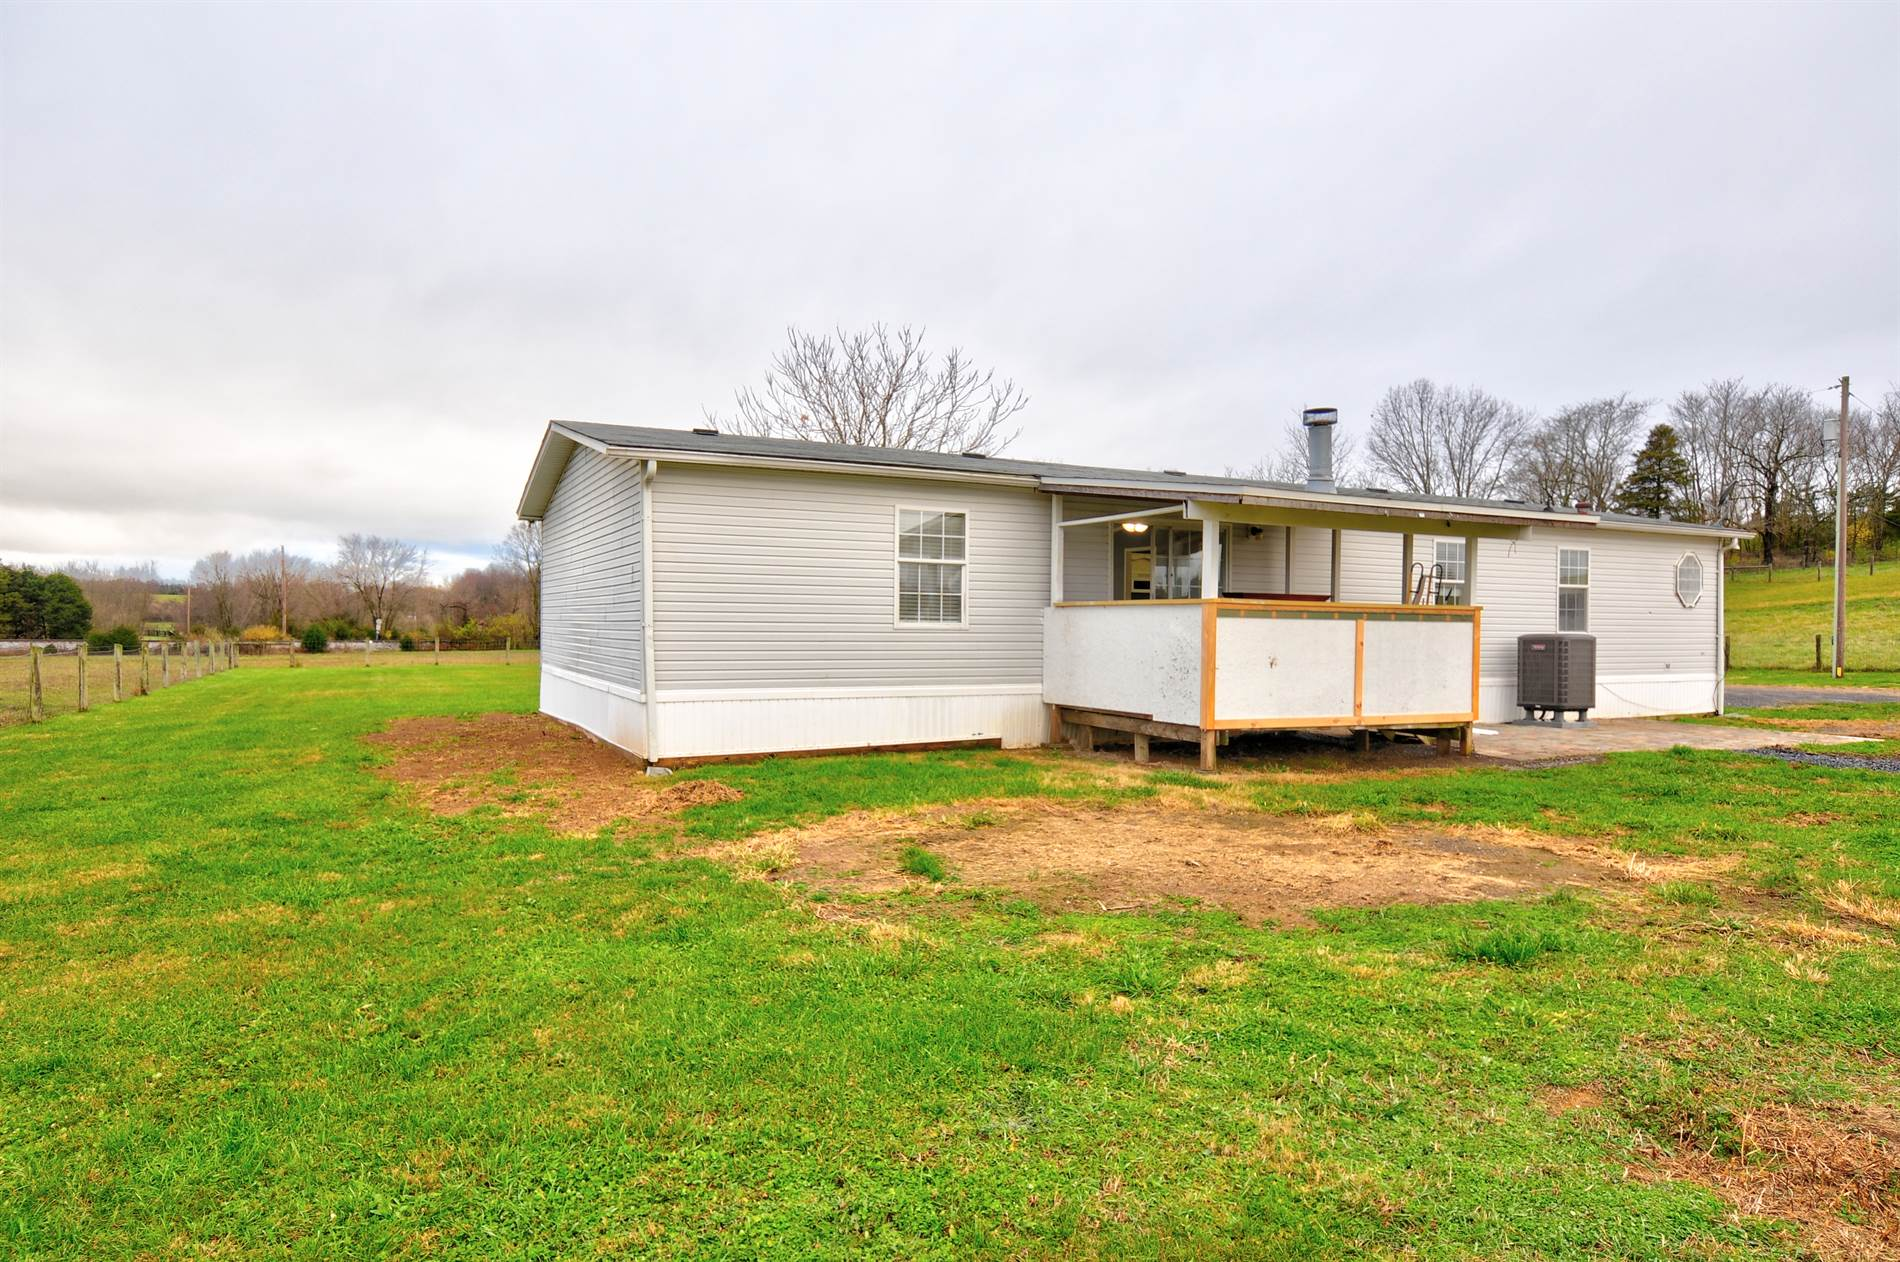 413 Misty Hill Lane, Berryville, VA 22611